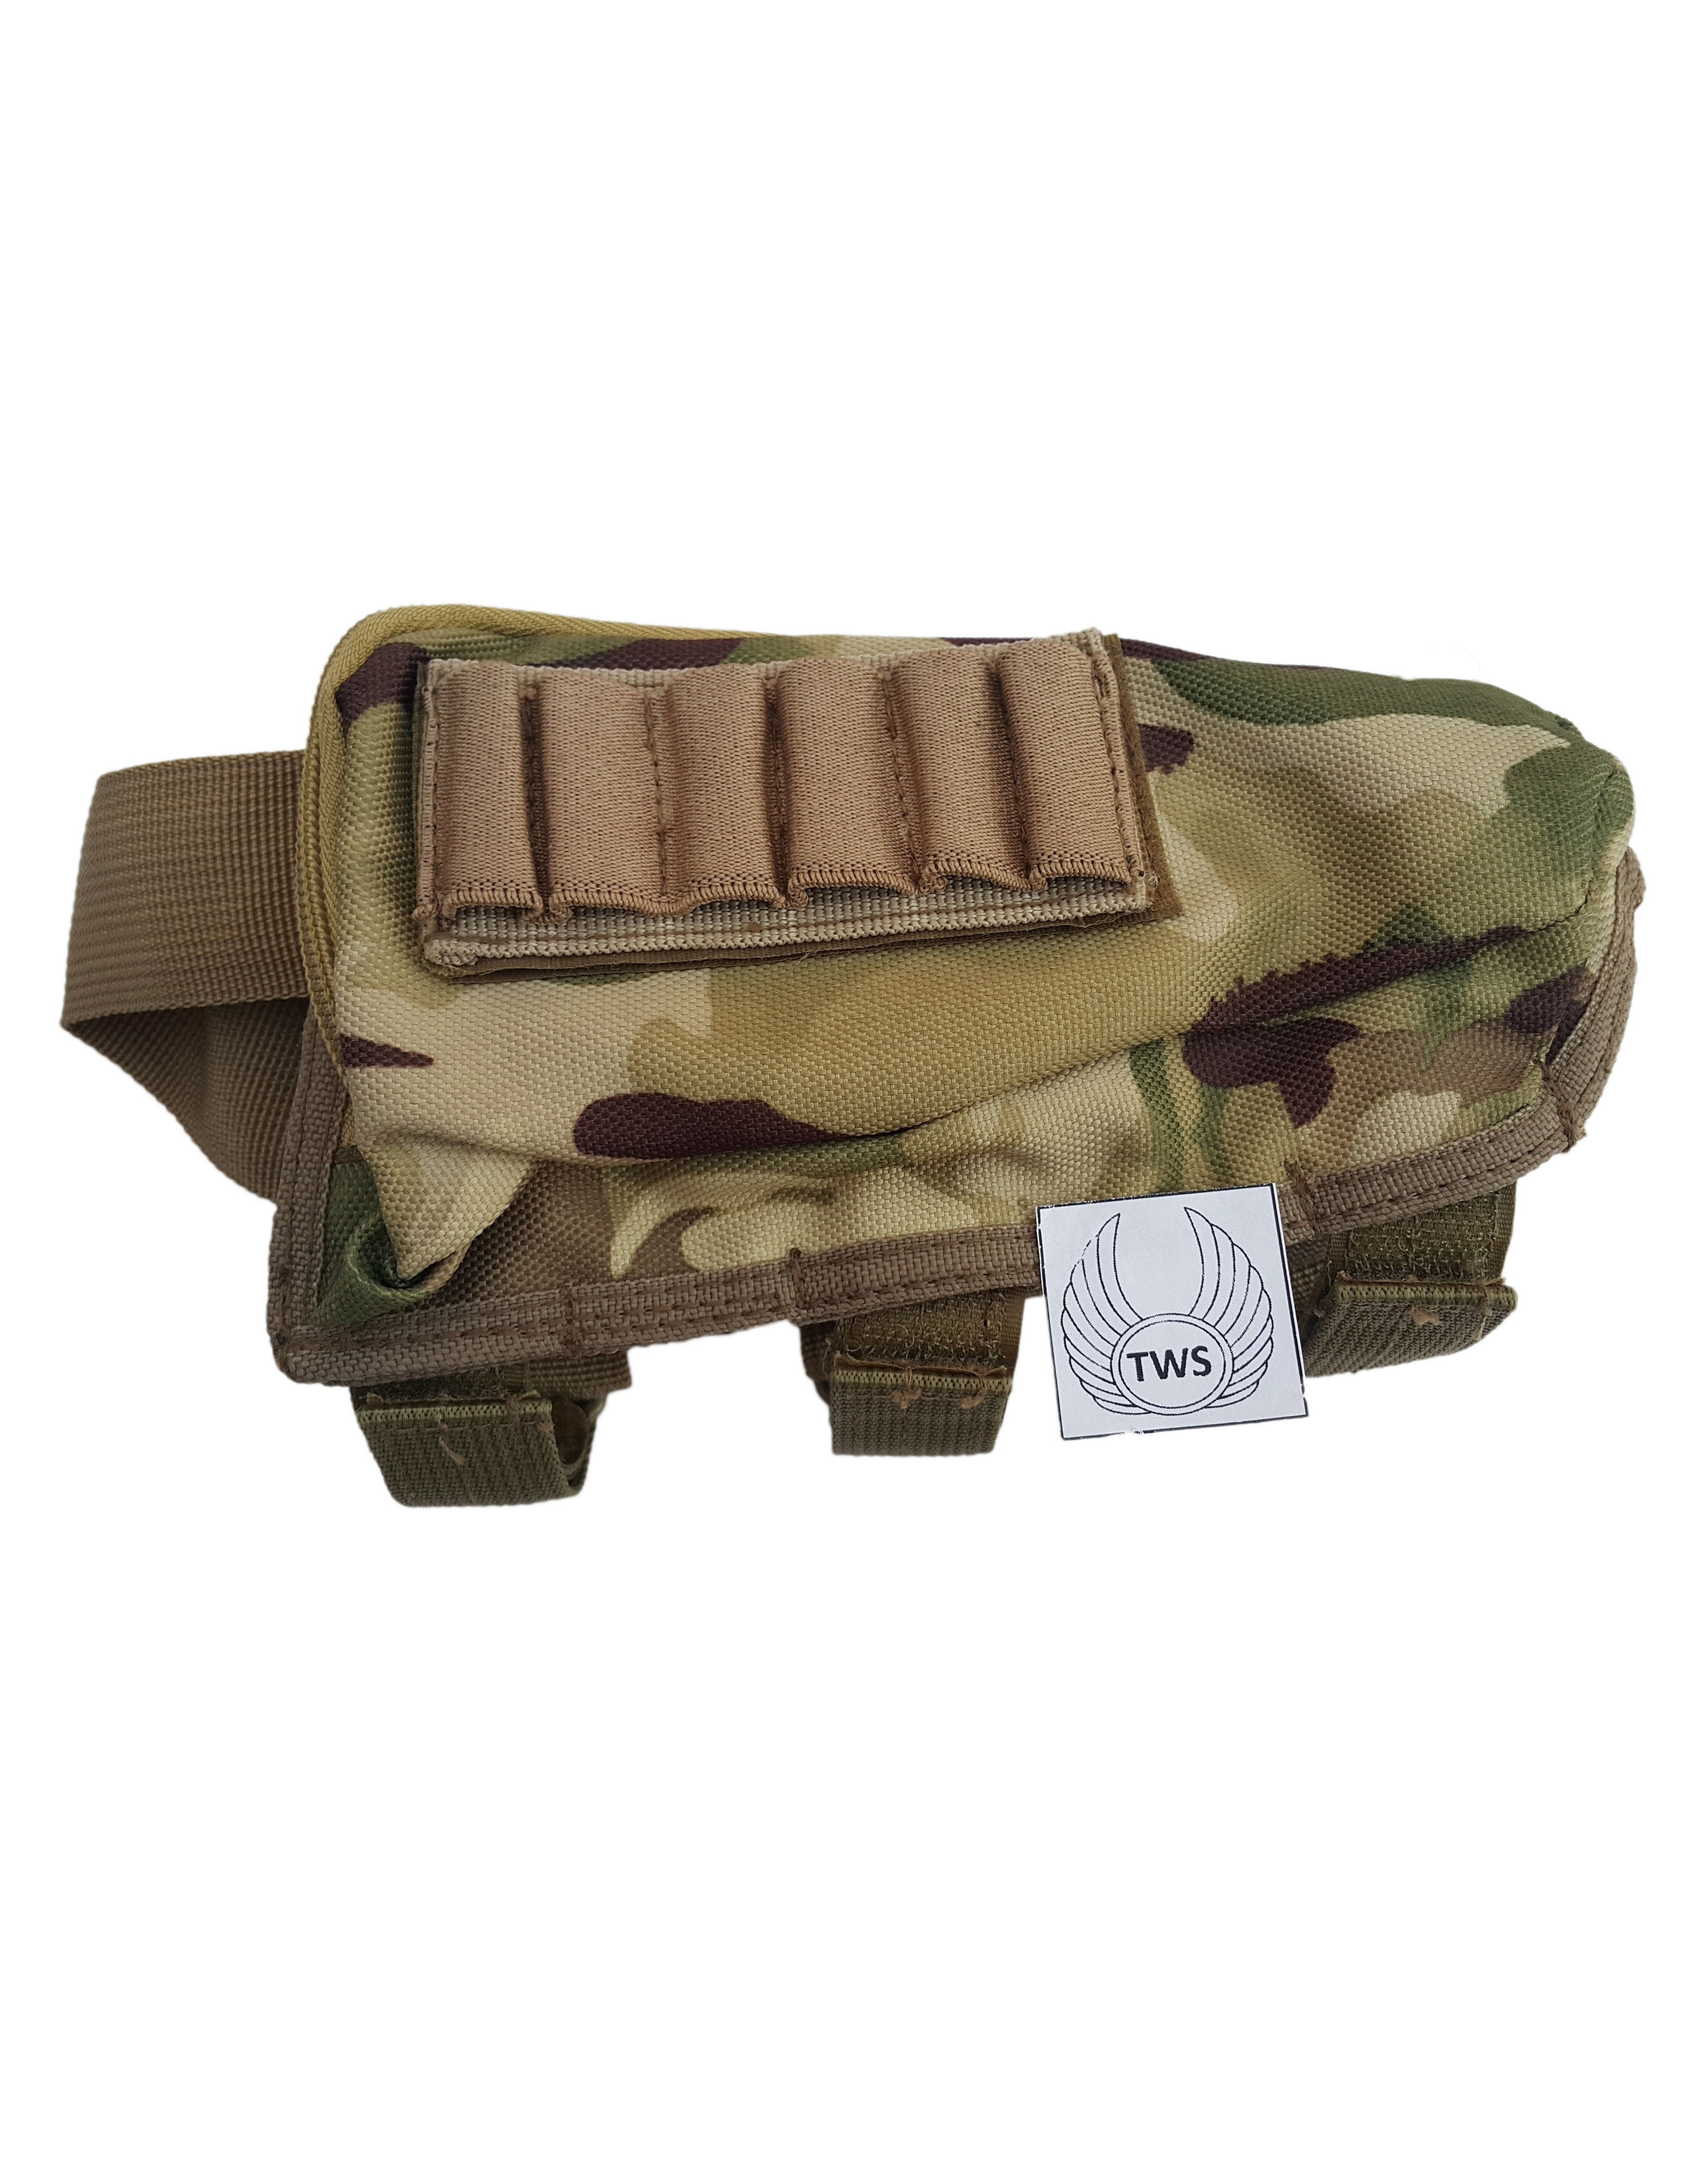 Butt Stock Ammo Holder Pouch – Tactical Wear & Sports